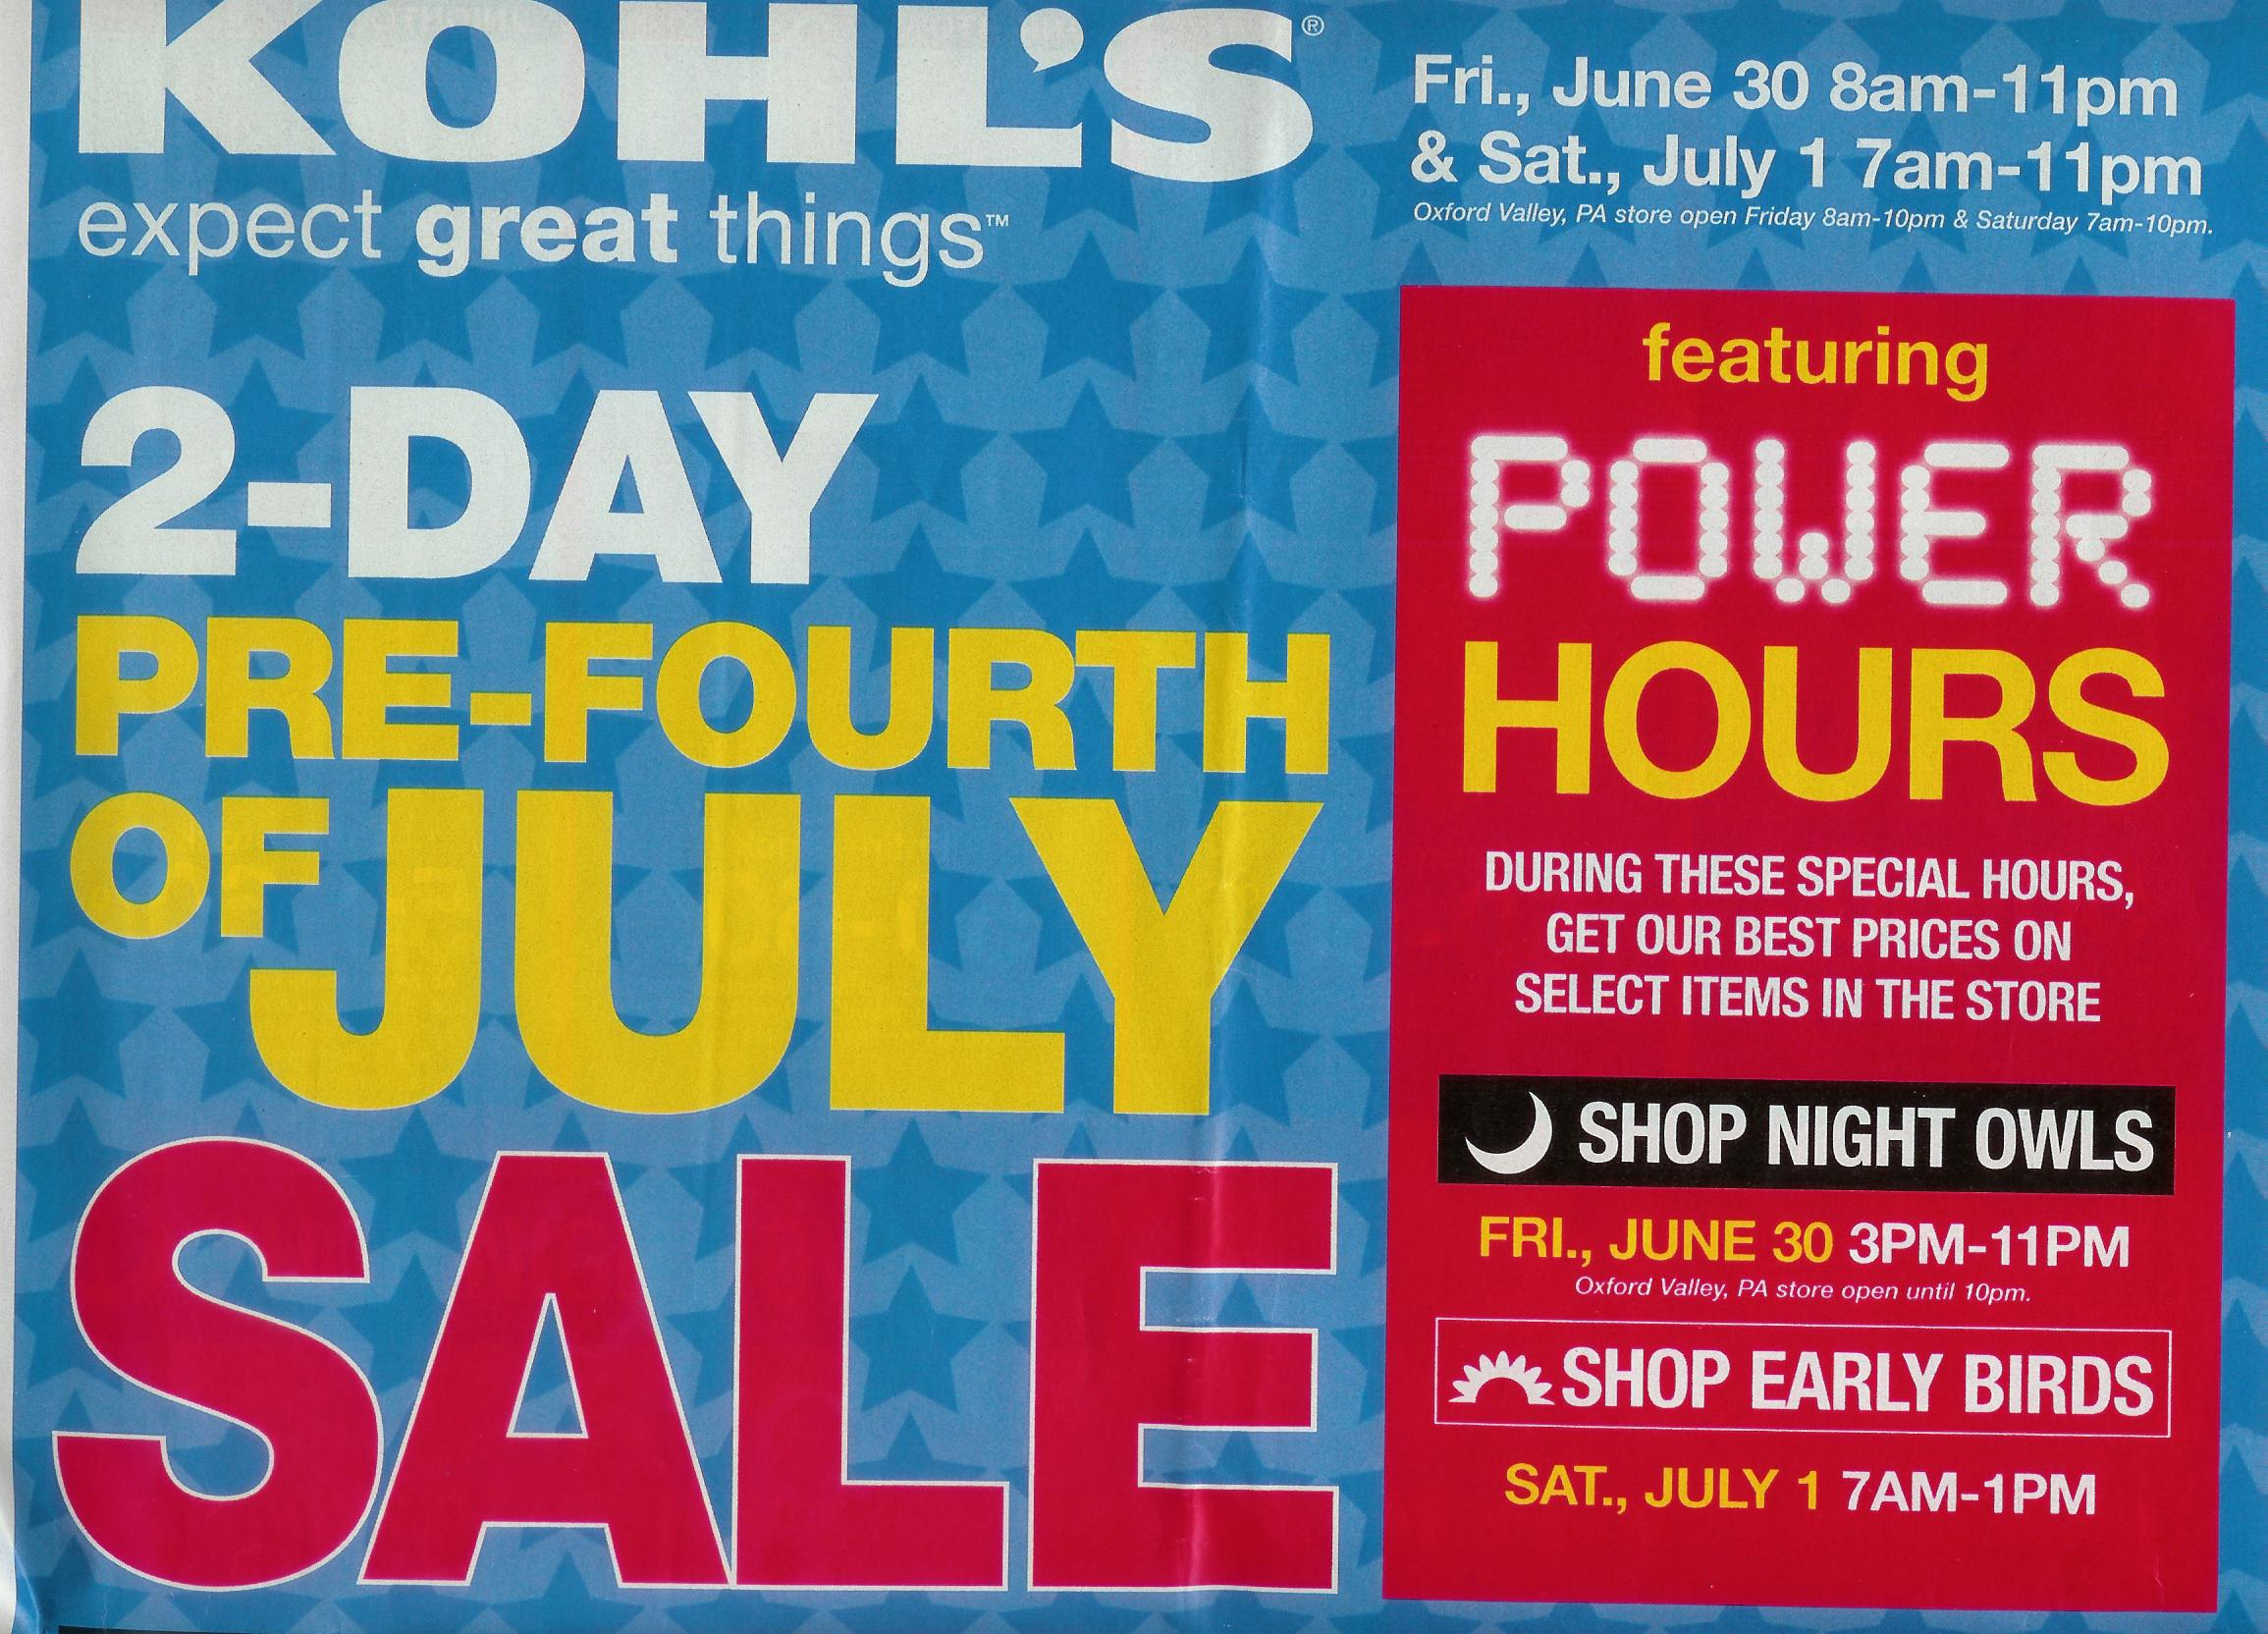 kohls-pre-fourth-of-july-sale